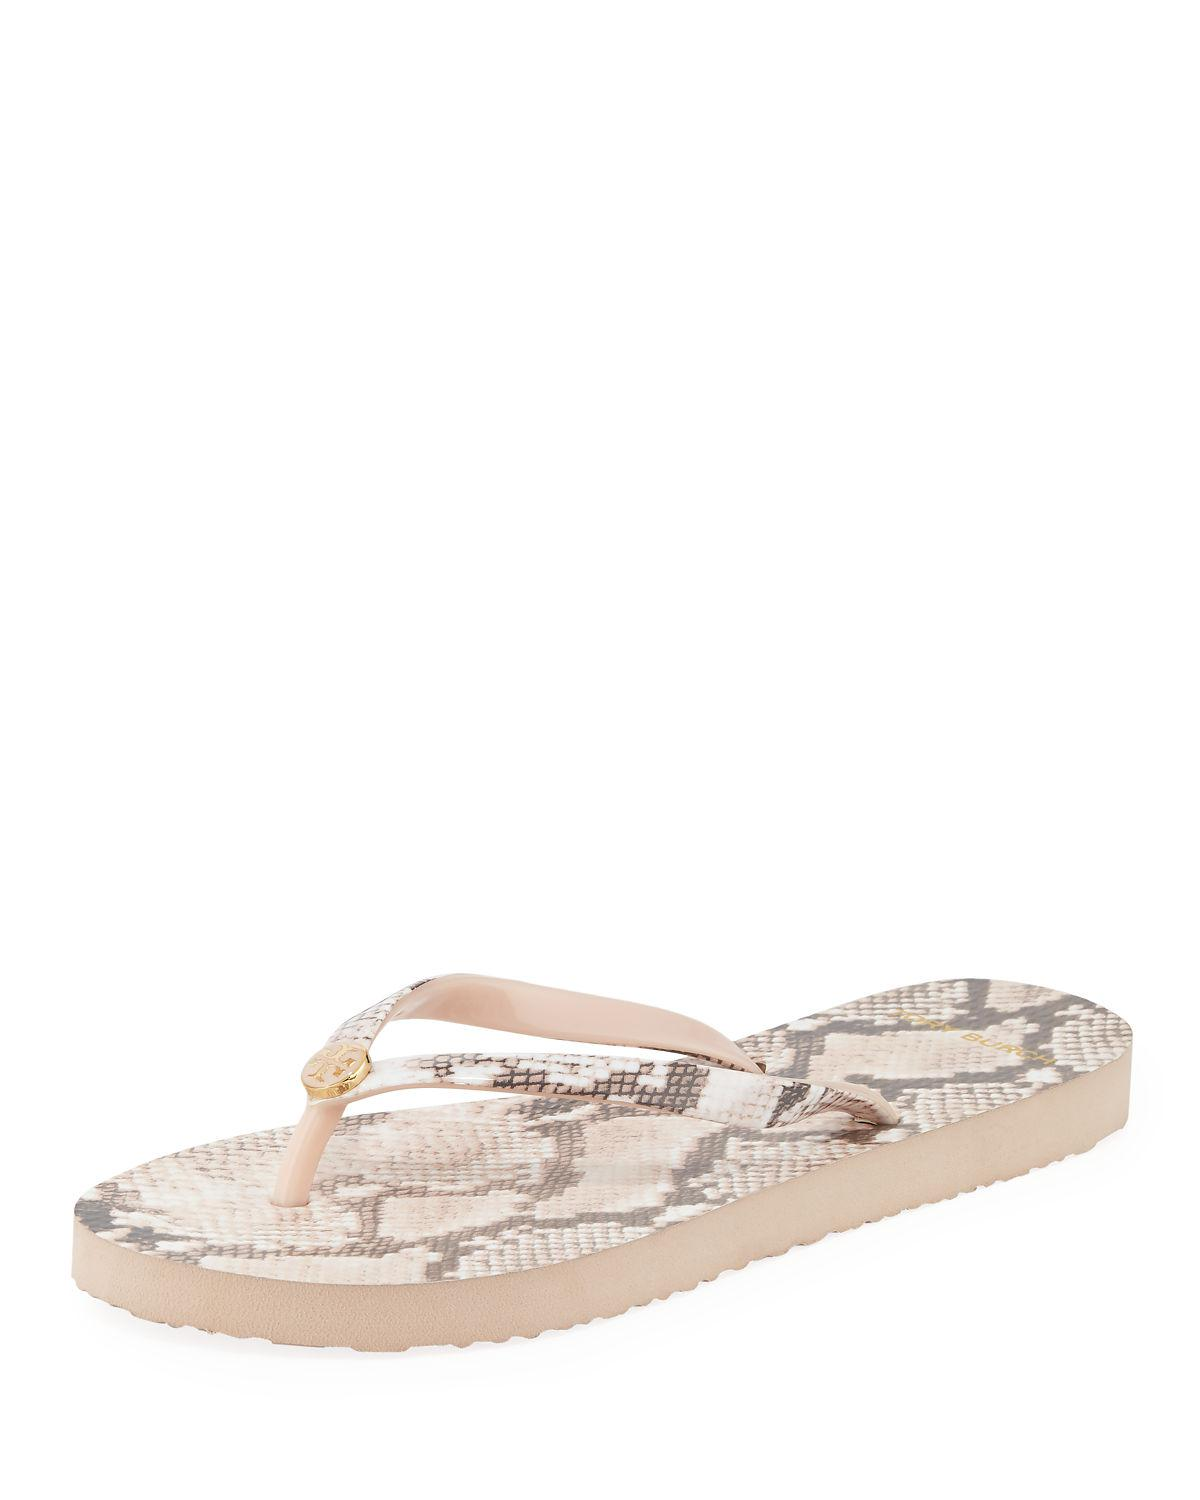 dbf504b03d37ae Tory Burch Printed Flip-Flop Sandals In Sunset Blush Roccia